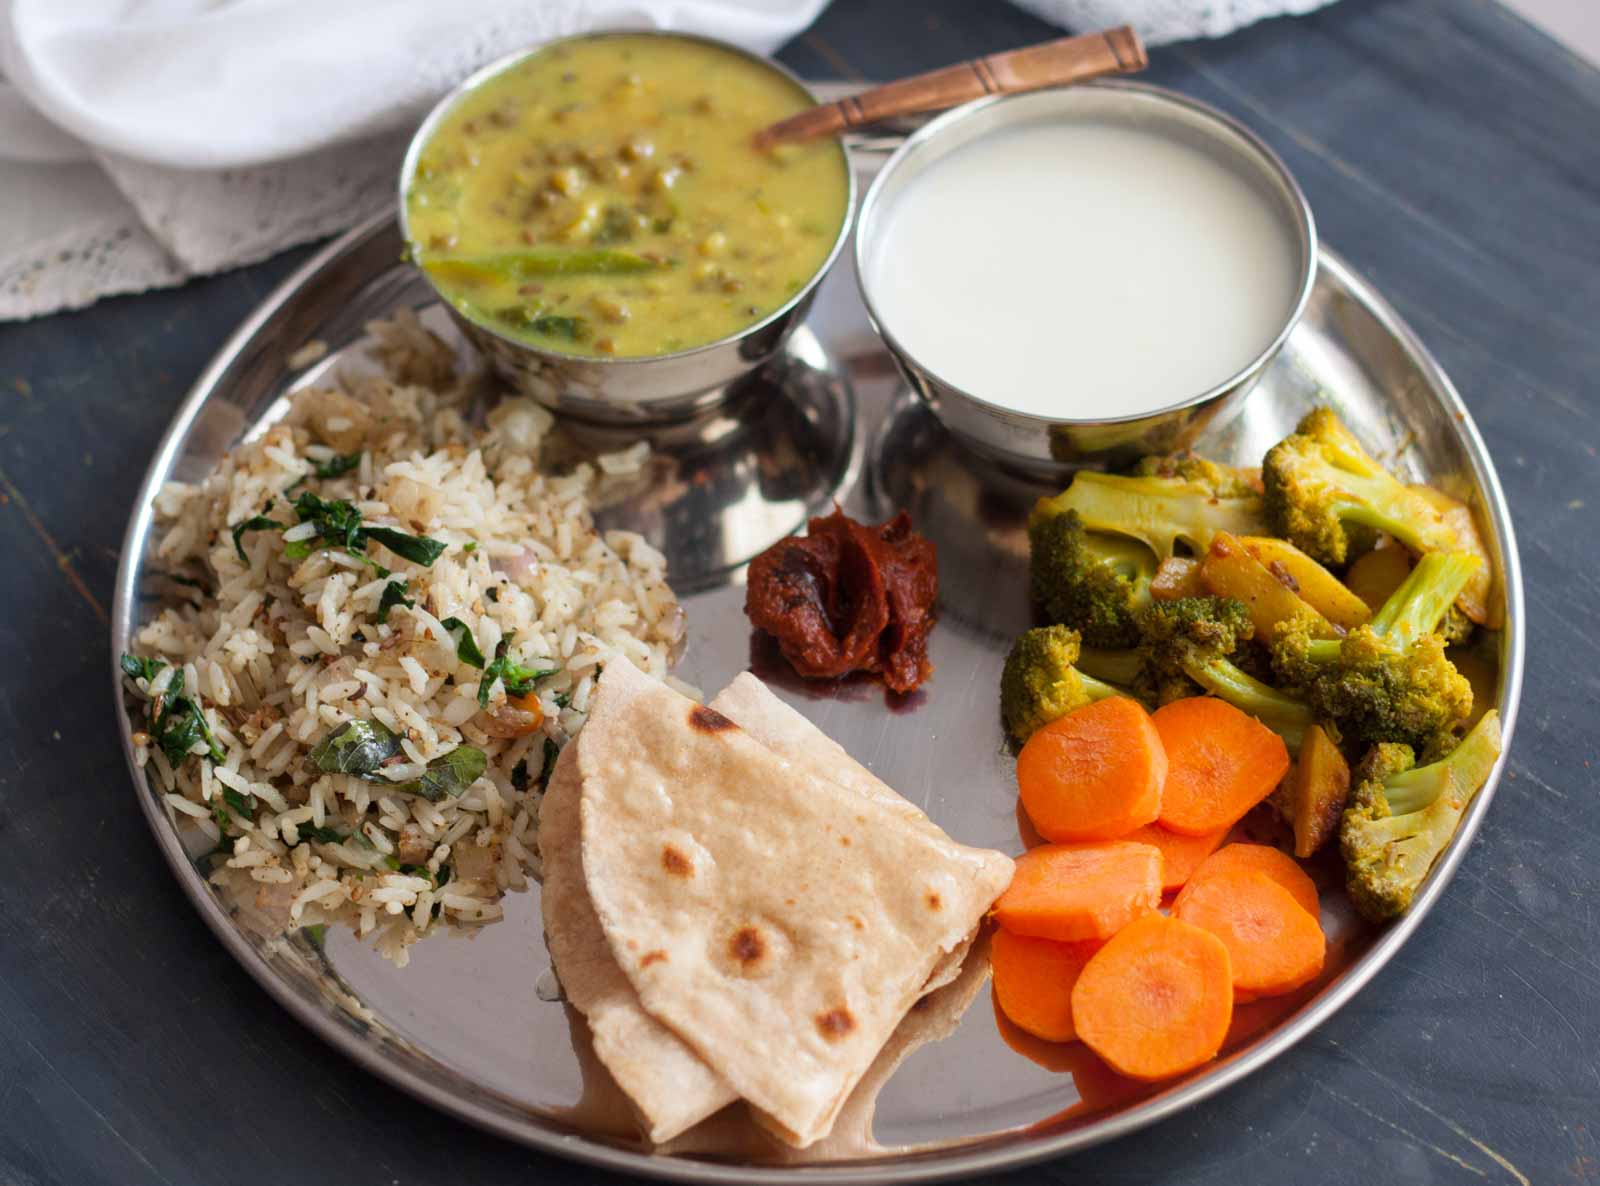 Everyday meal plate sattvik recipes with green mung bean dal everyday meal plate sattvik recipes with green mung bean dal broccoli stir fry methi pulao forumfinder Images